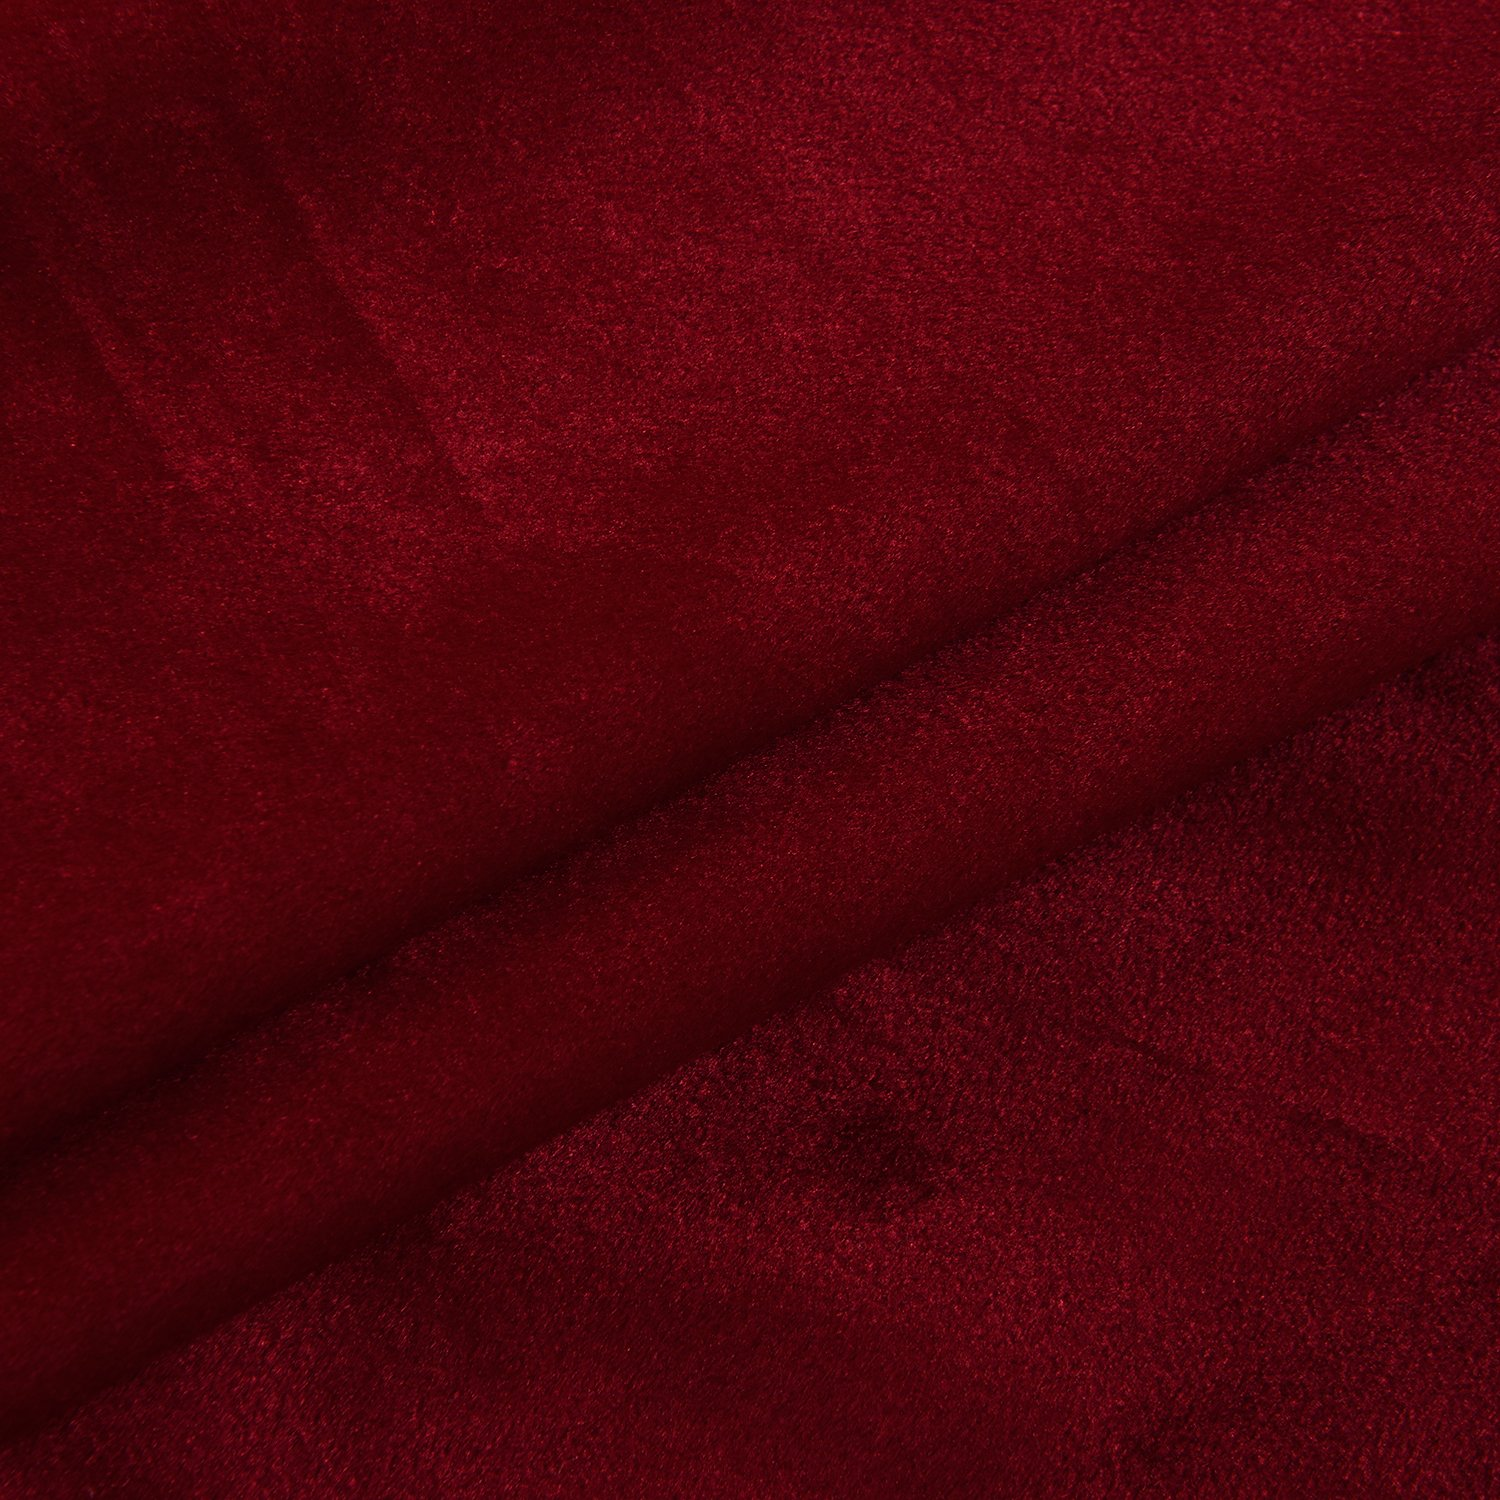 Cherry Home Set of 2 Classic Blackout Velvet Curtains Panels Home Theater Grommet Drapes Eyelet 52Wx63L-inch Red(2 panels)Theater  Bedroom  Living Room  Hotel by Cherry Home (Image #9)